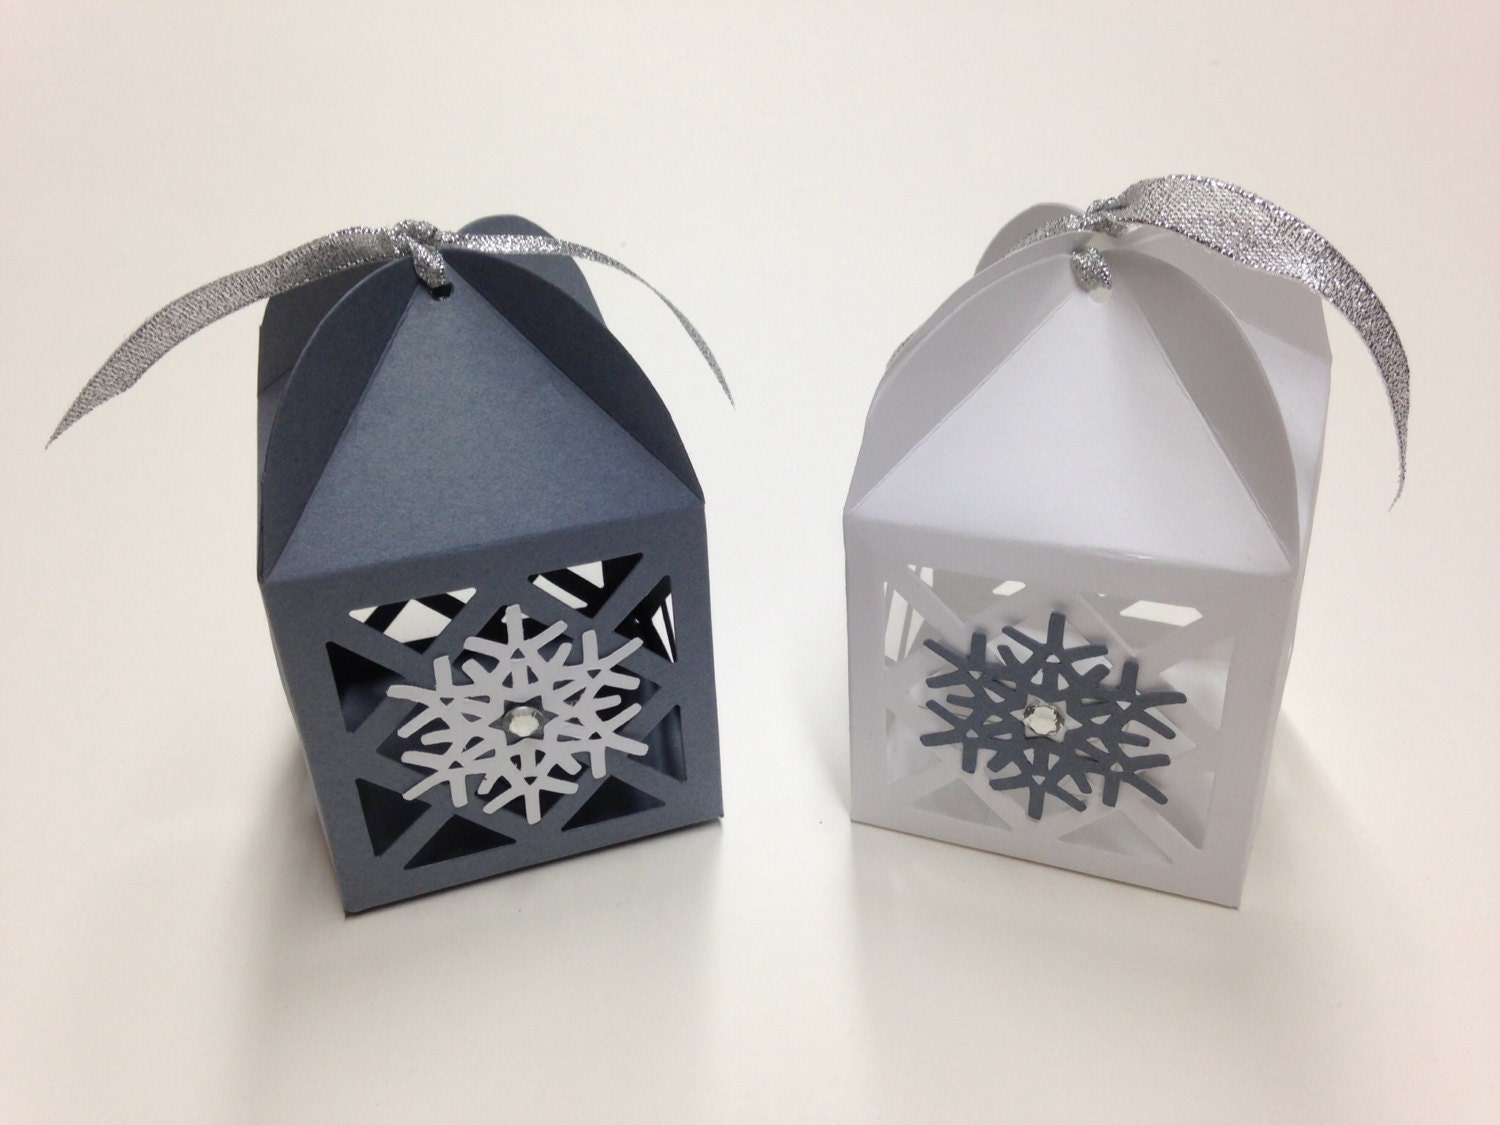 Winter Wedding Gifts: Snowflake Favors Snowflake Favor Boxes Winter Wedding Favor